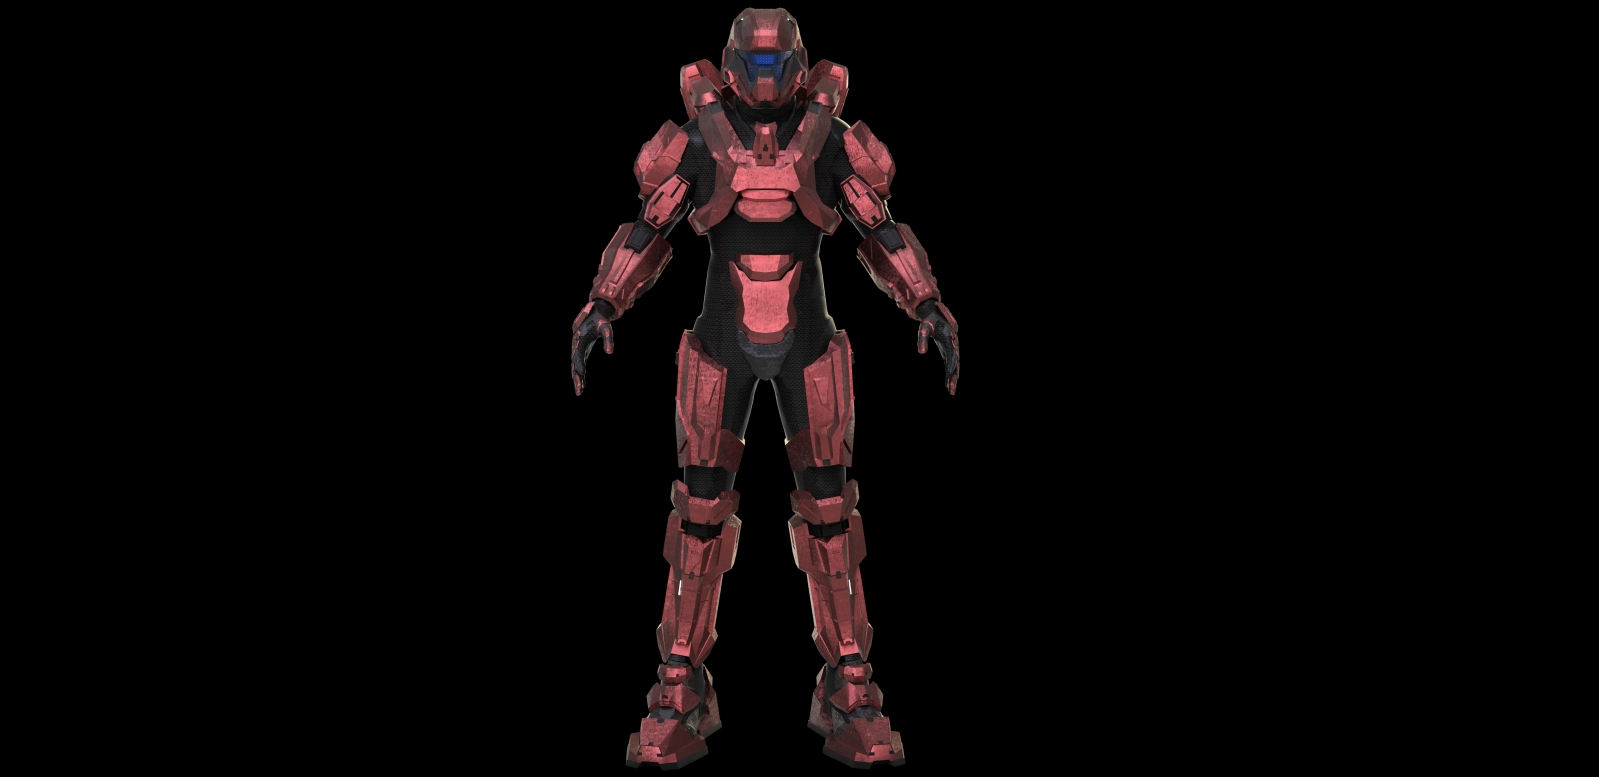 Halo 4 Recruit armor (3D Model build) | Page 2 | Halo